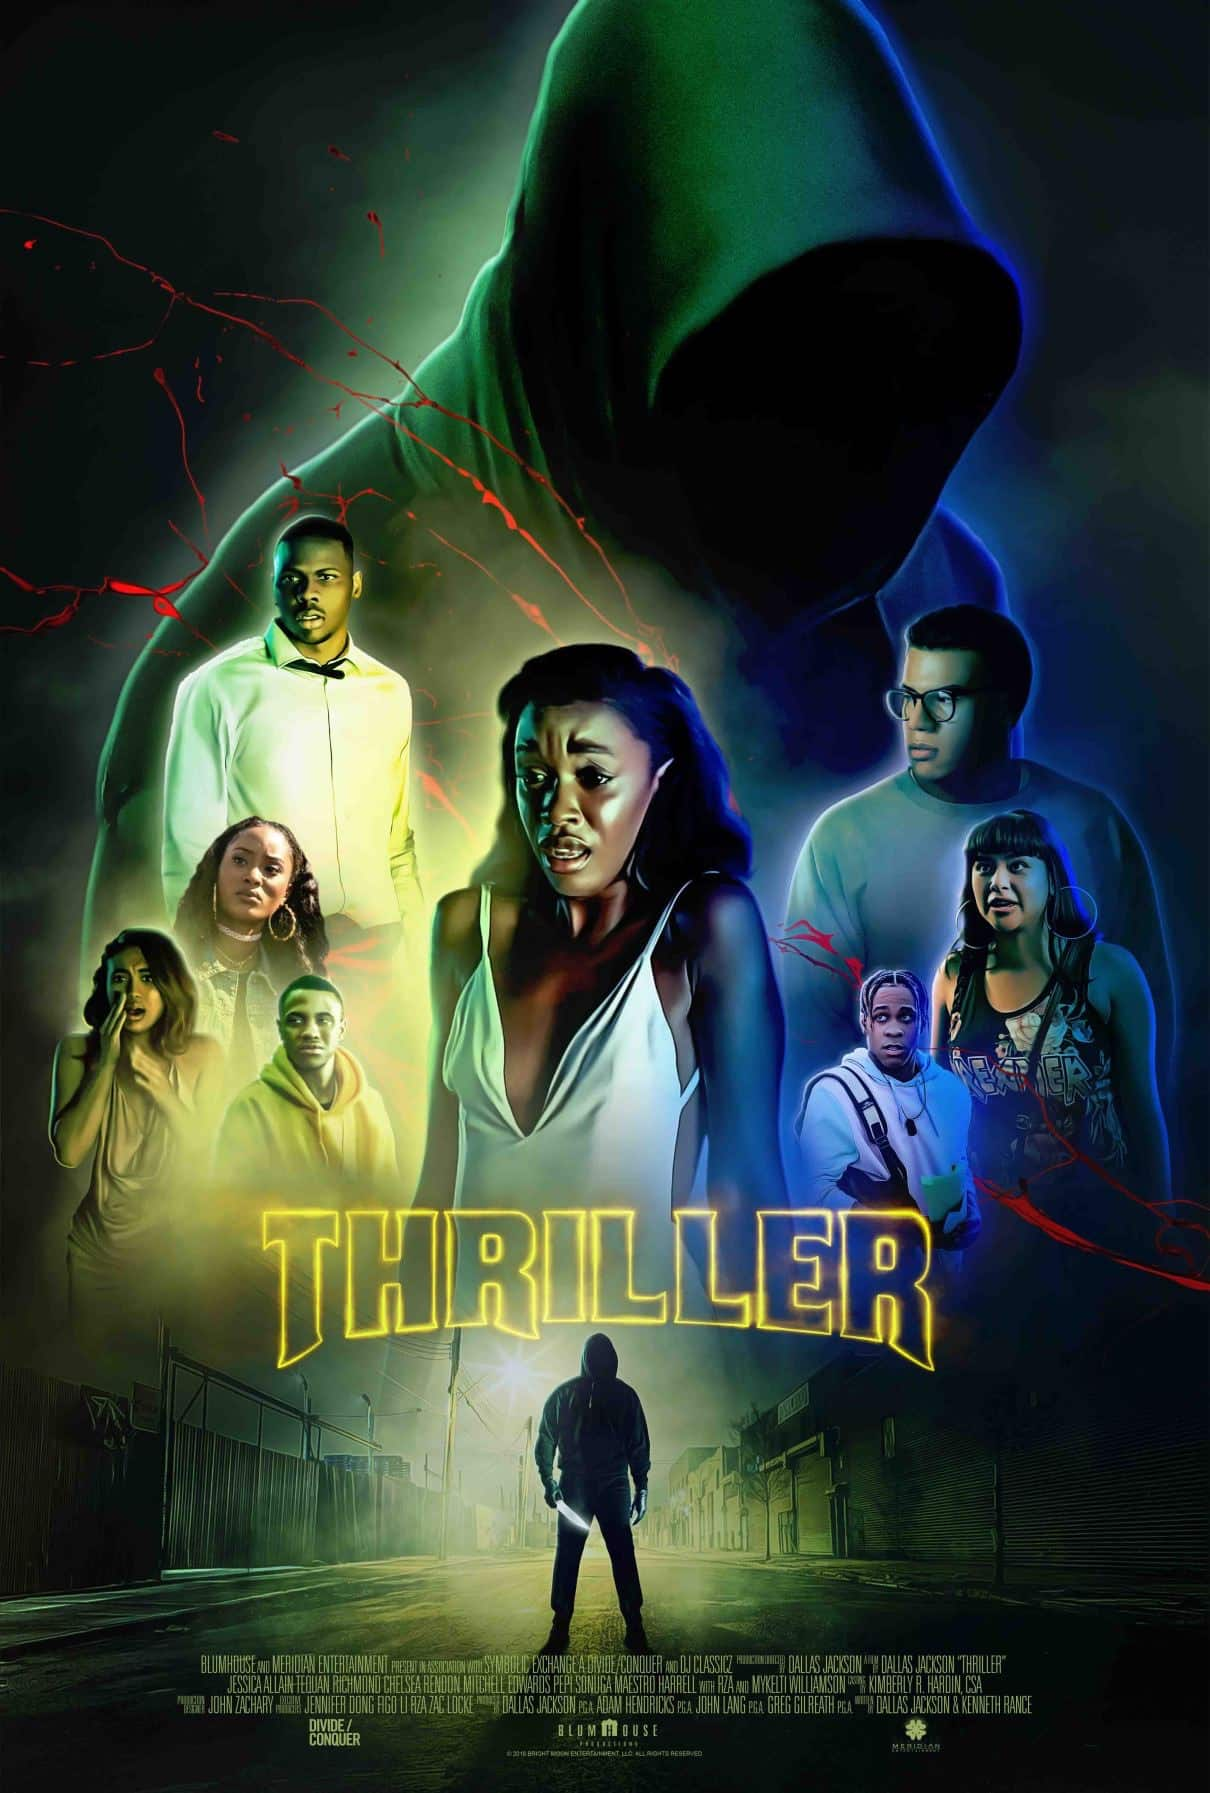 Thriller Cinematographe.it